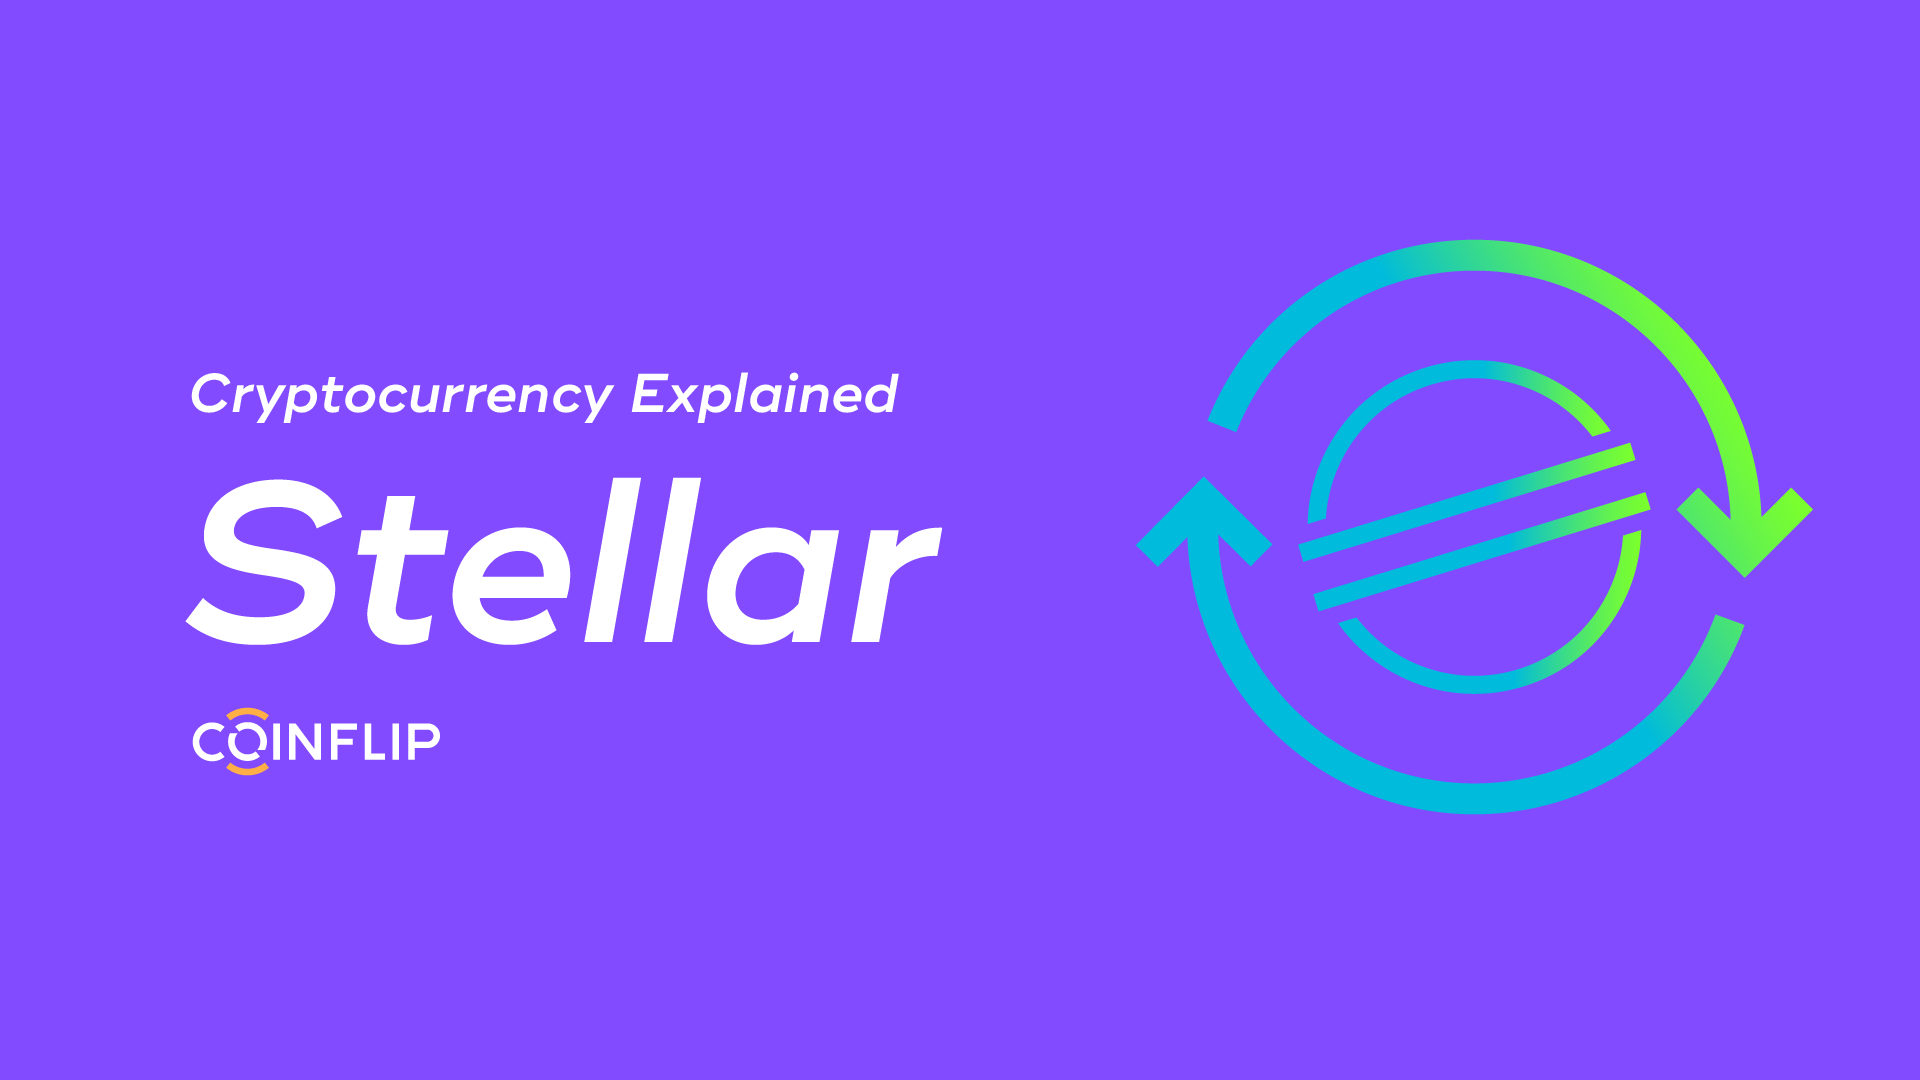 Cover Image for Cryptocurrency Explained: Stellar